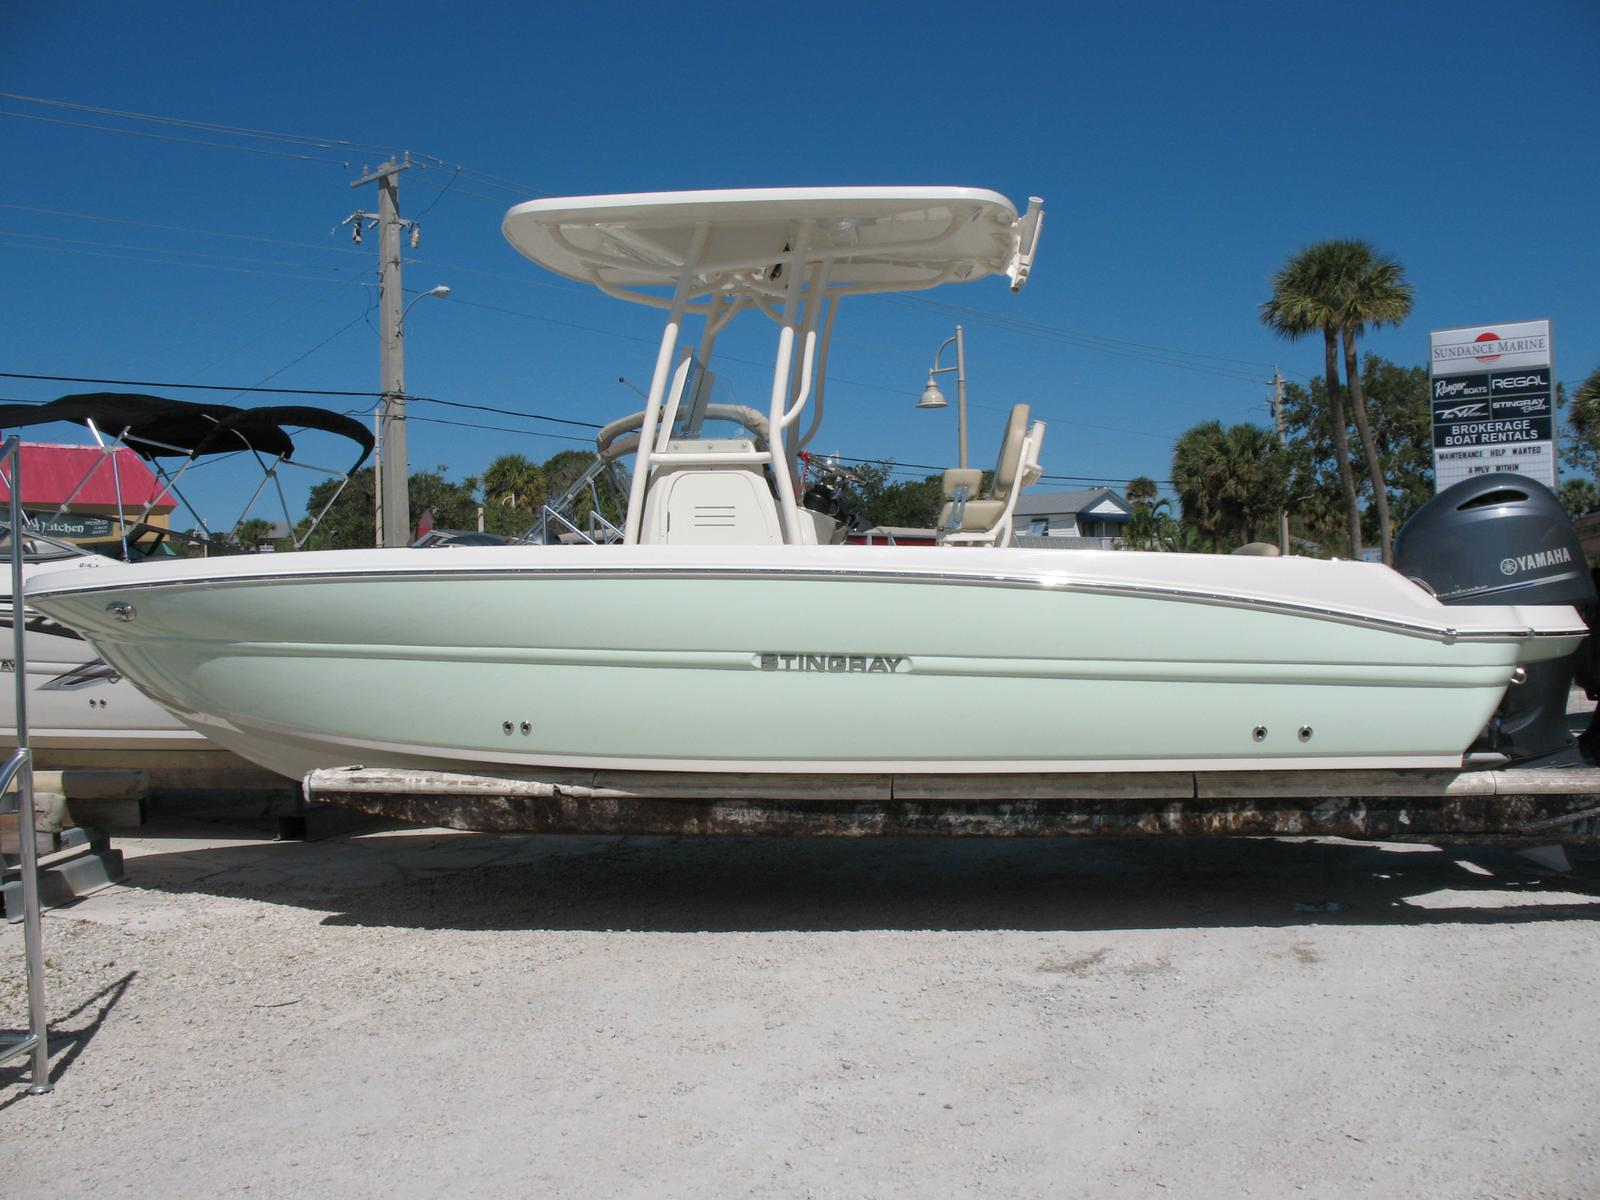 Stingray boats for sale in Florida - Boat Trader